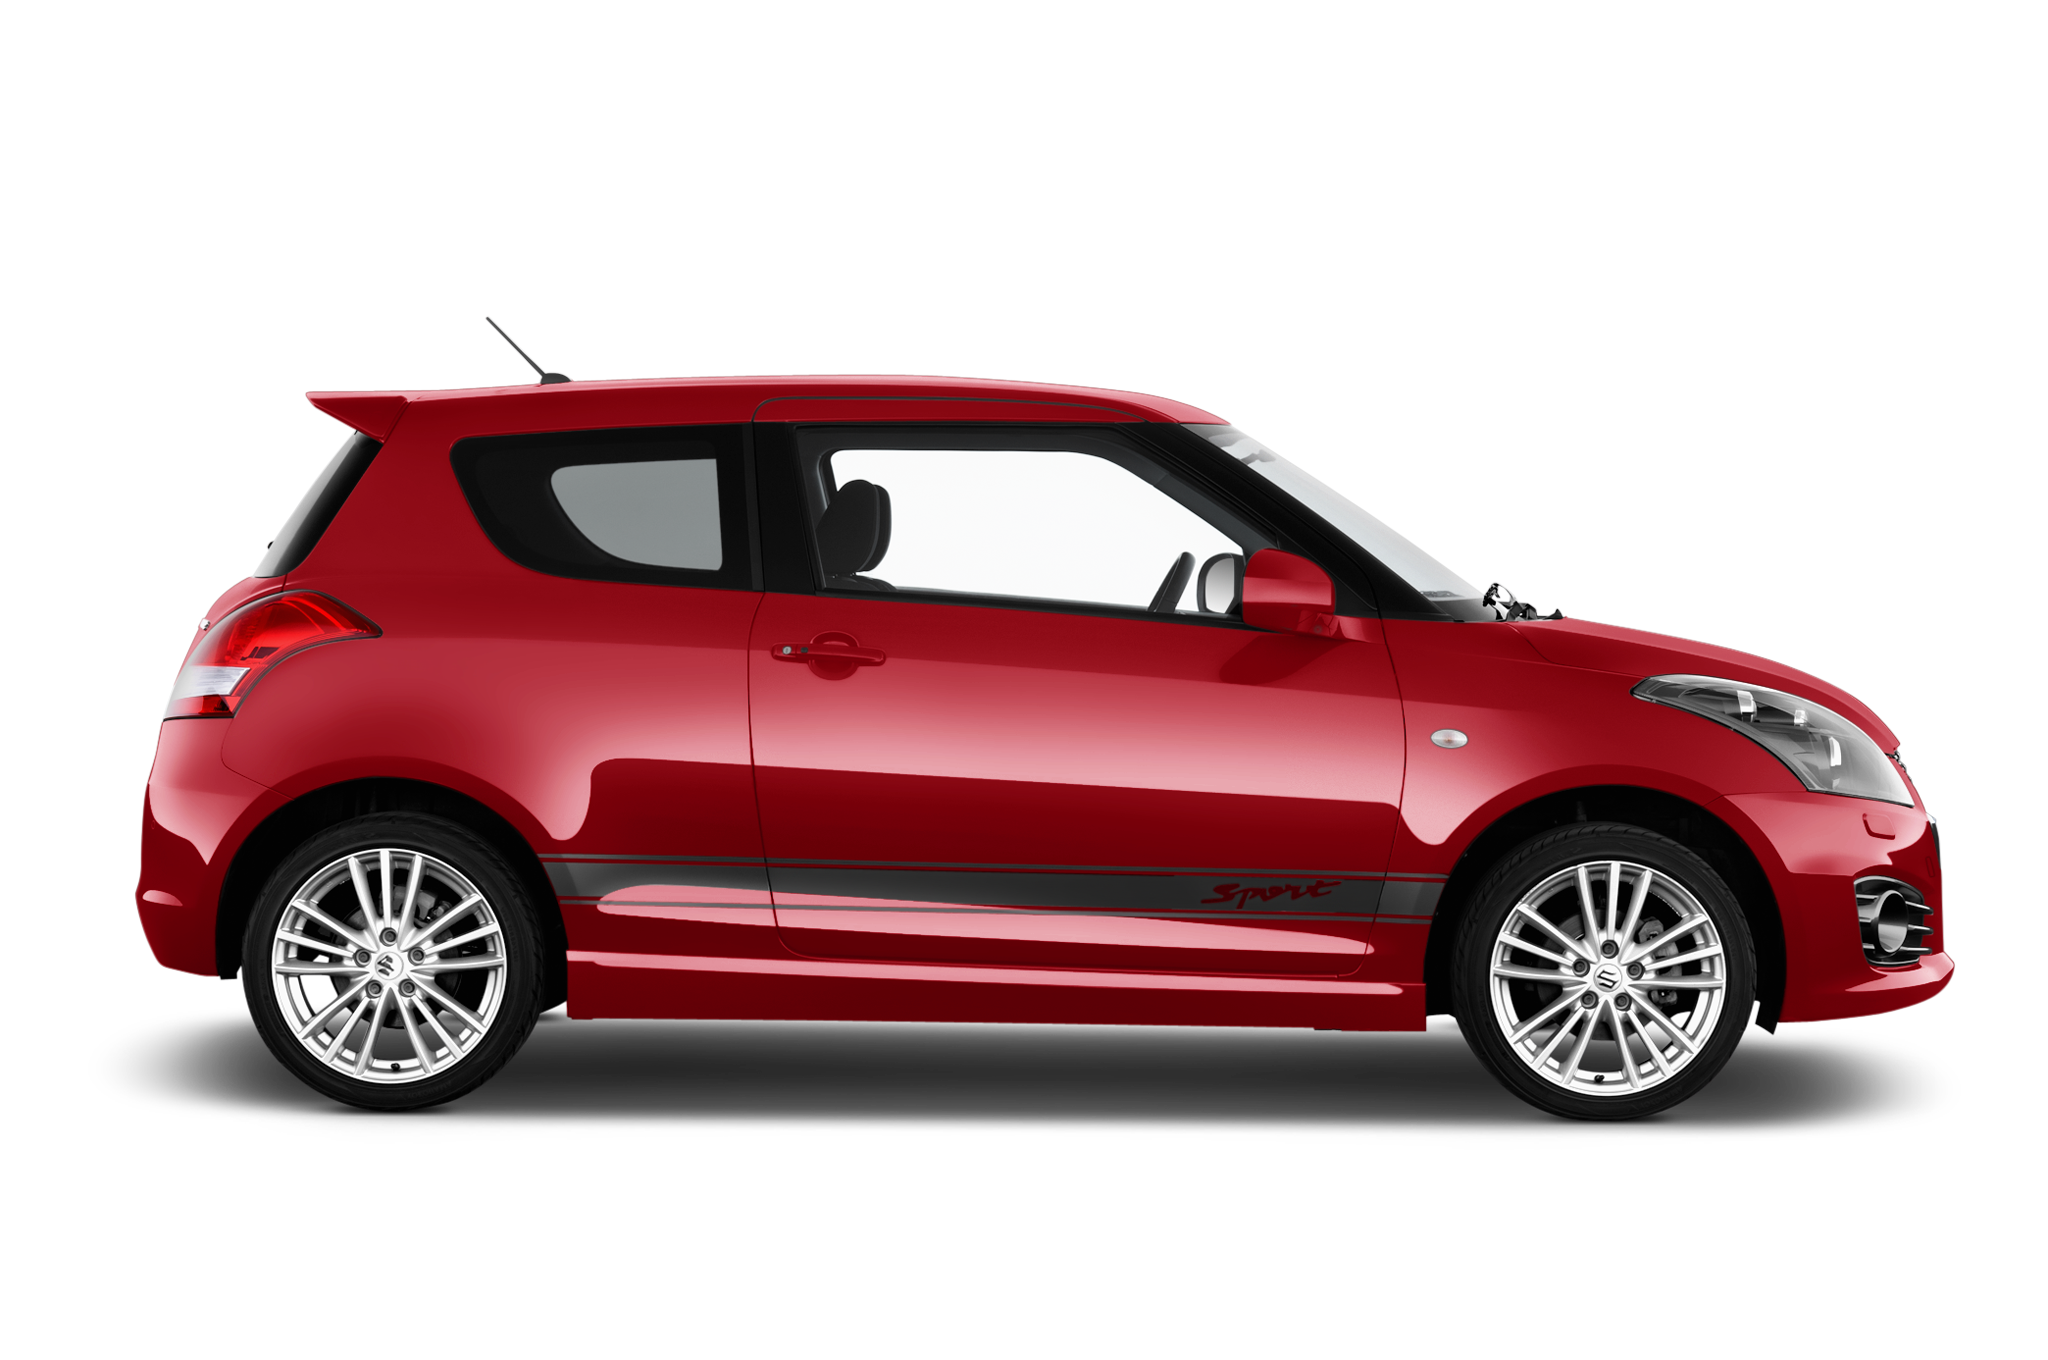 Long Term Car Lease >> Suzuki Swift | Vehicle Review | Arval UK